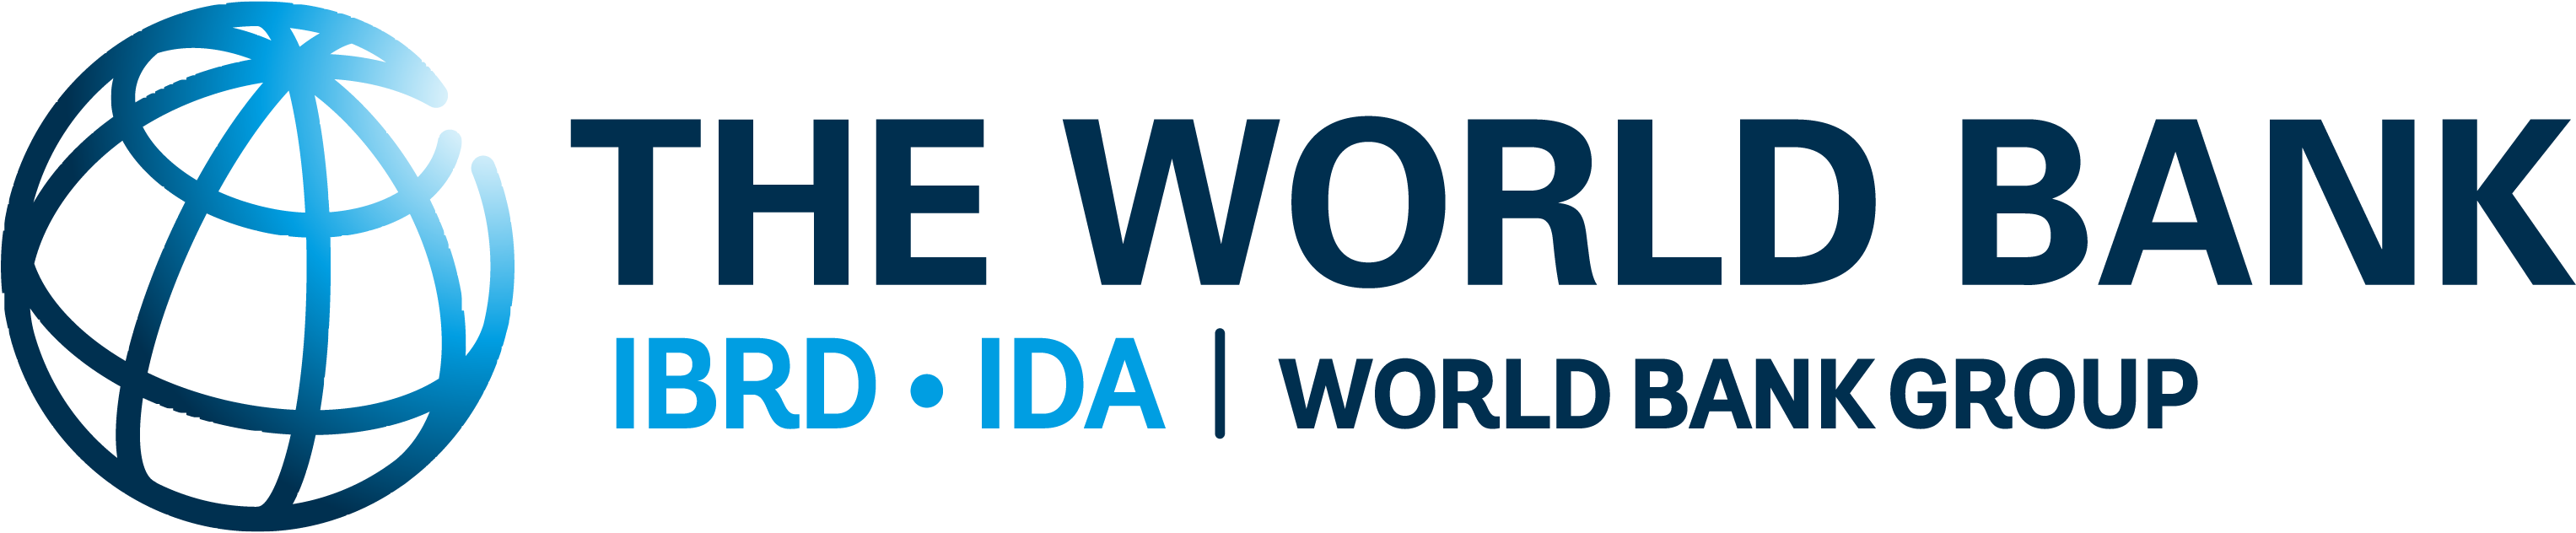 world_bank-logo - Logo Ar International PNG